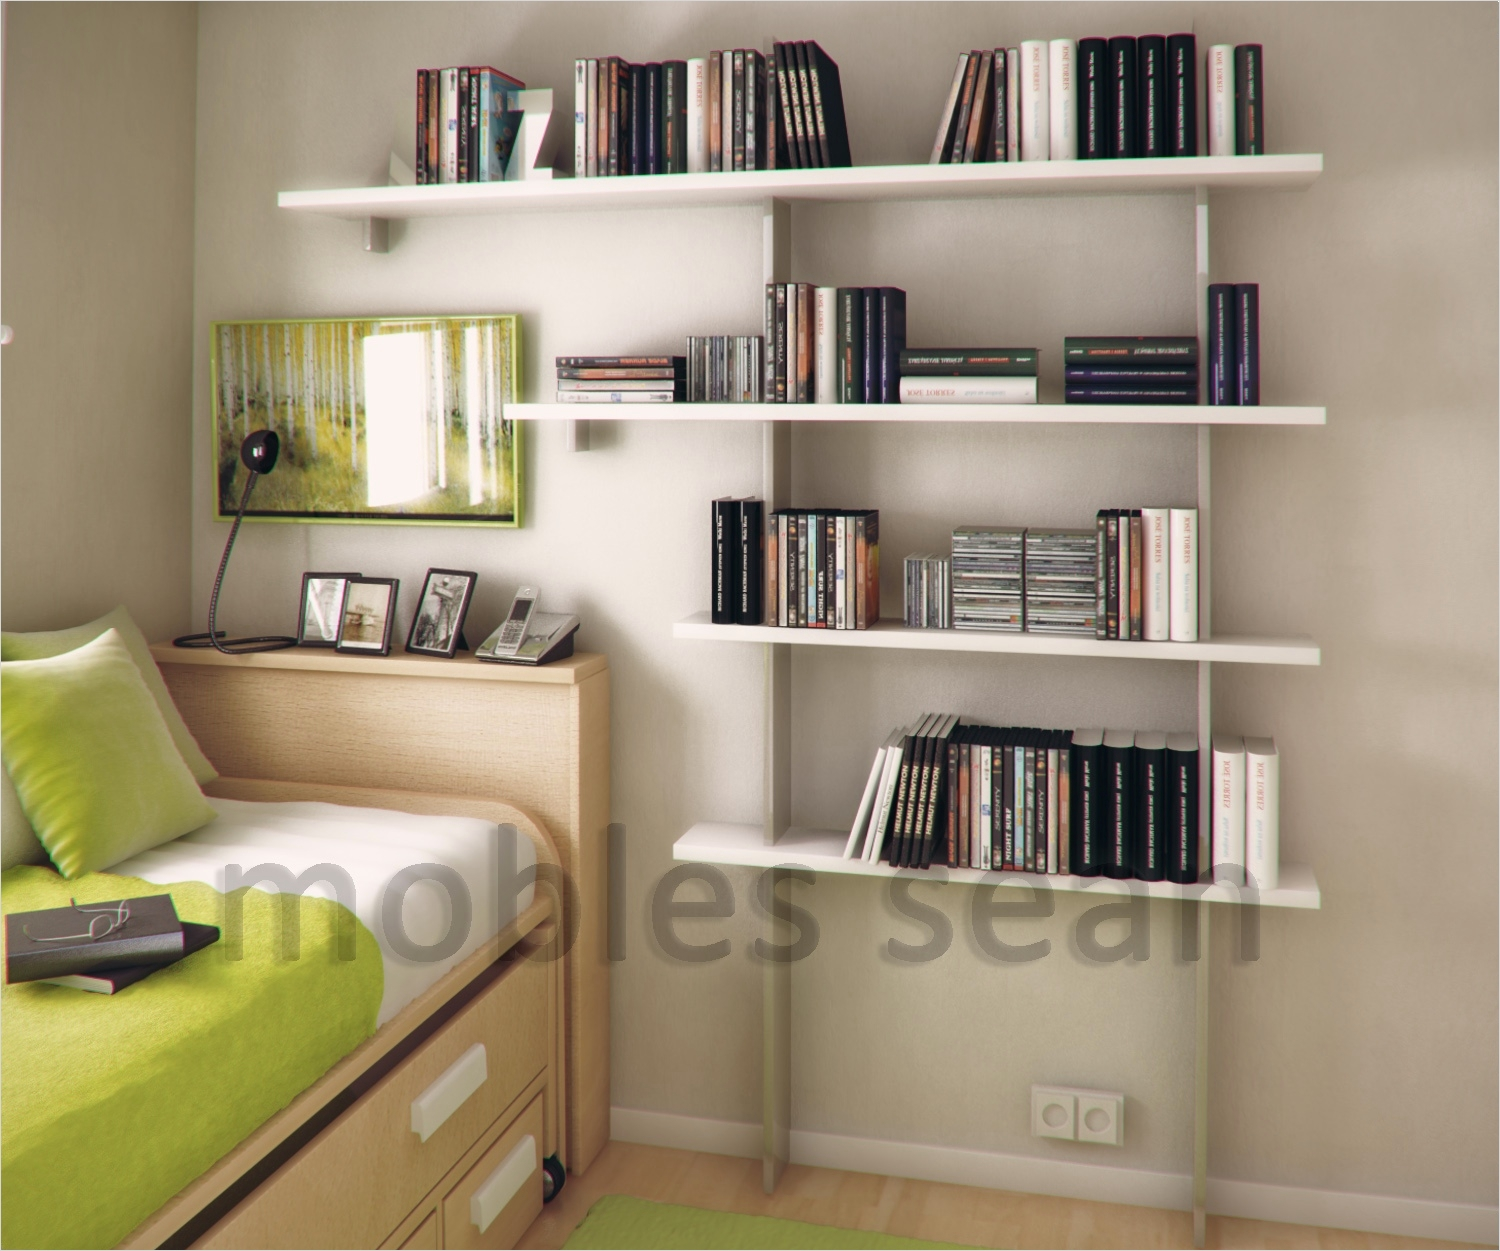 42 Creative Small Room Storage Ideas 55 Space Saving Designs for Small Kids Rooms 9